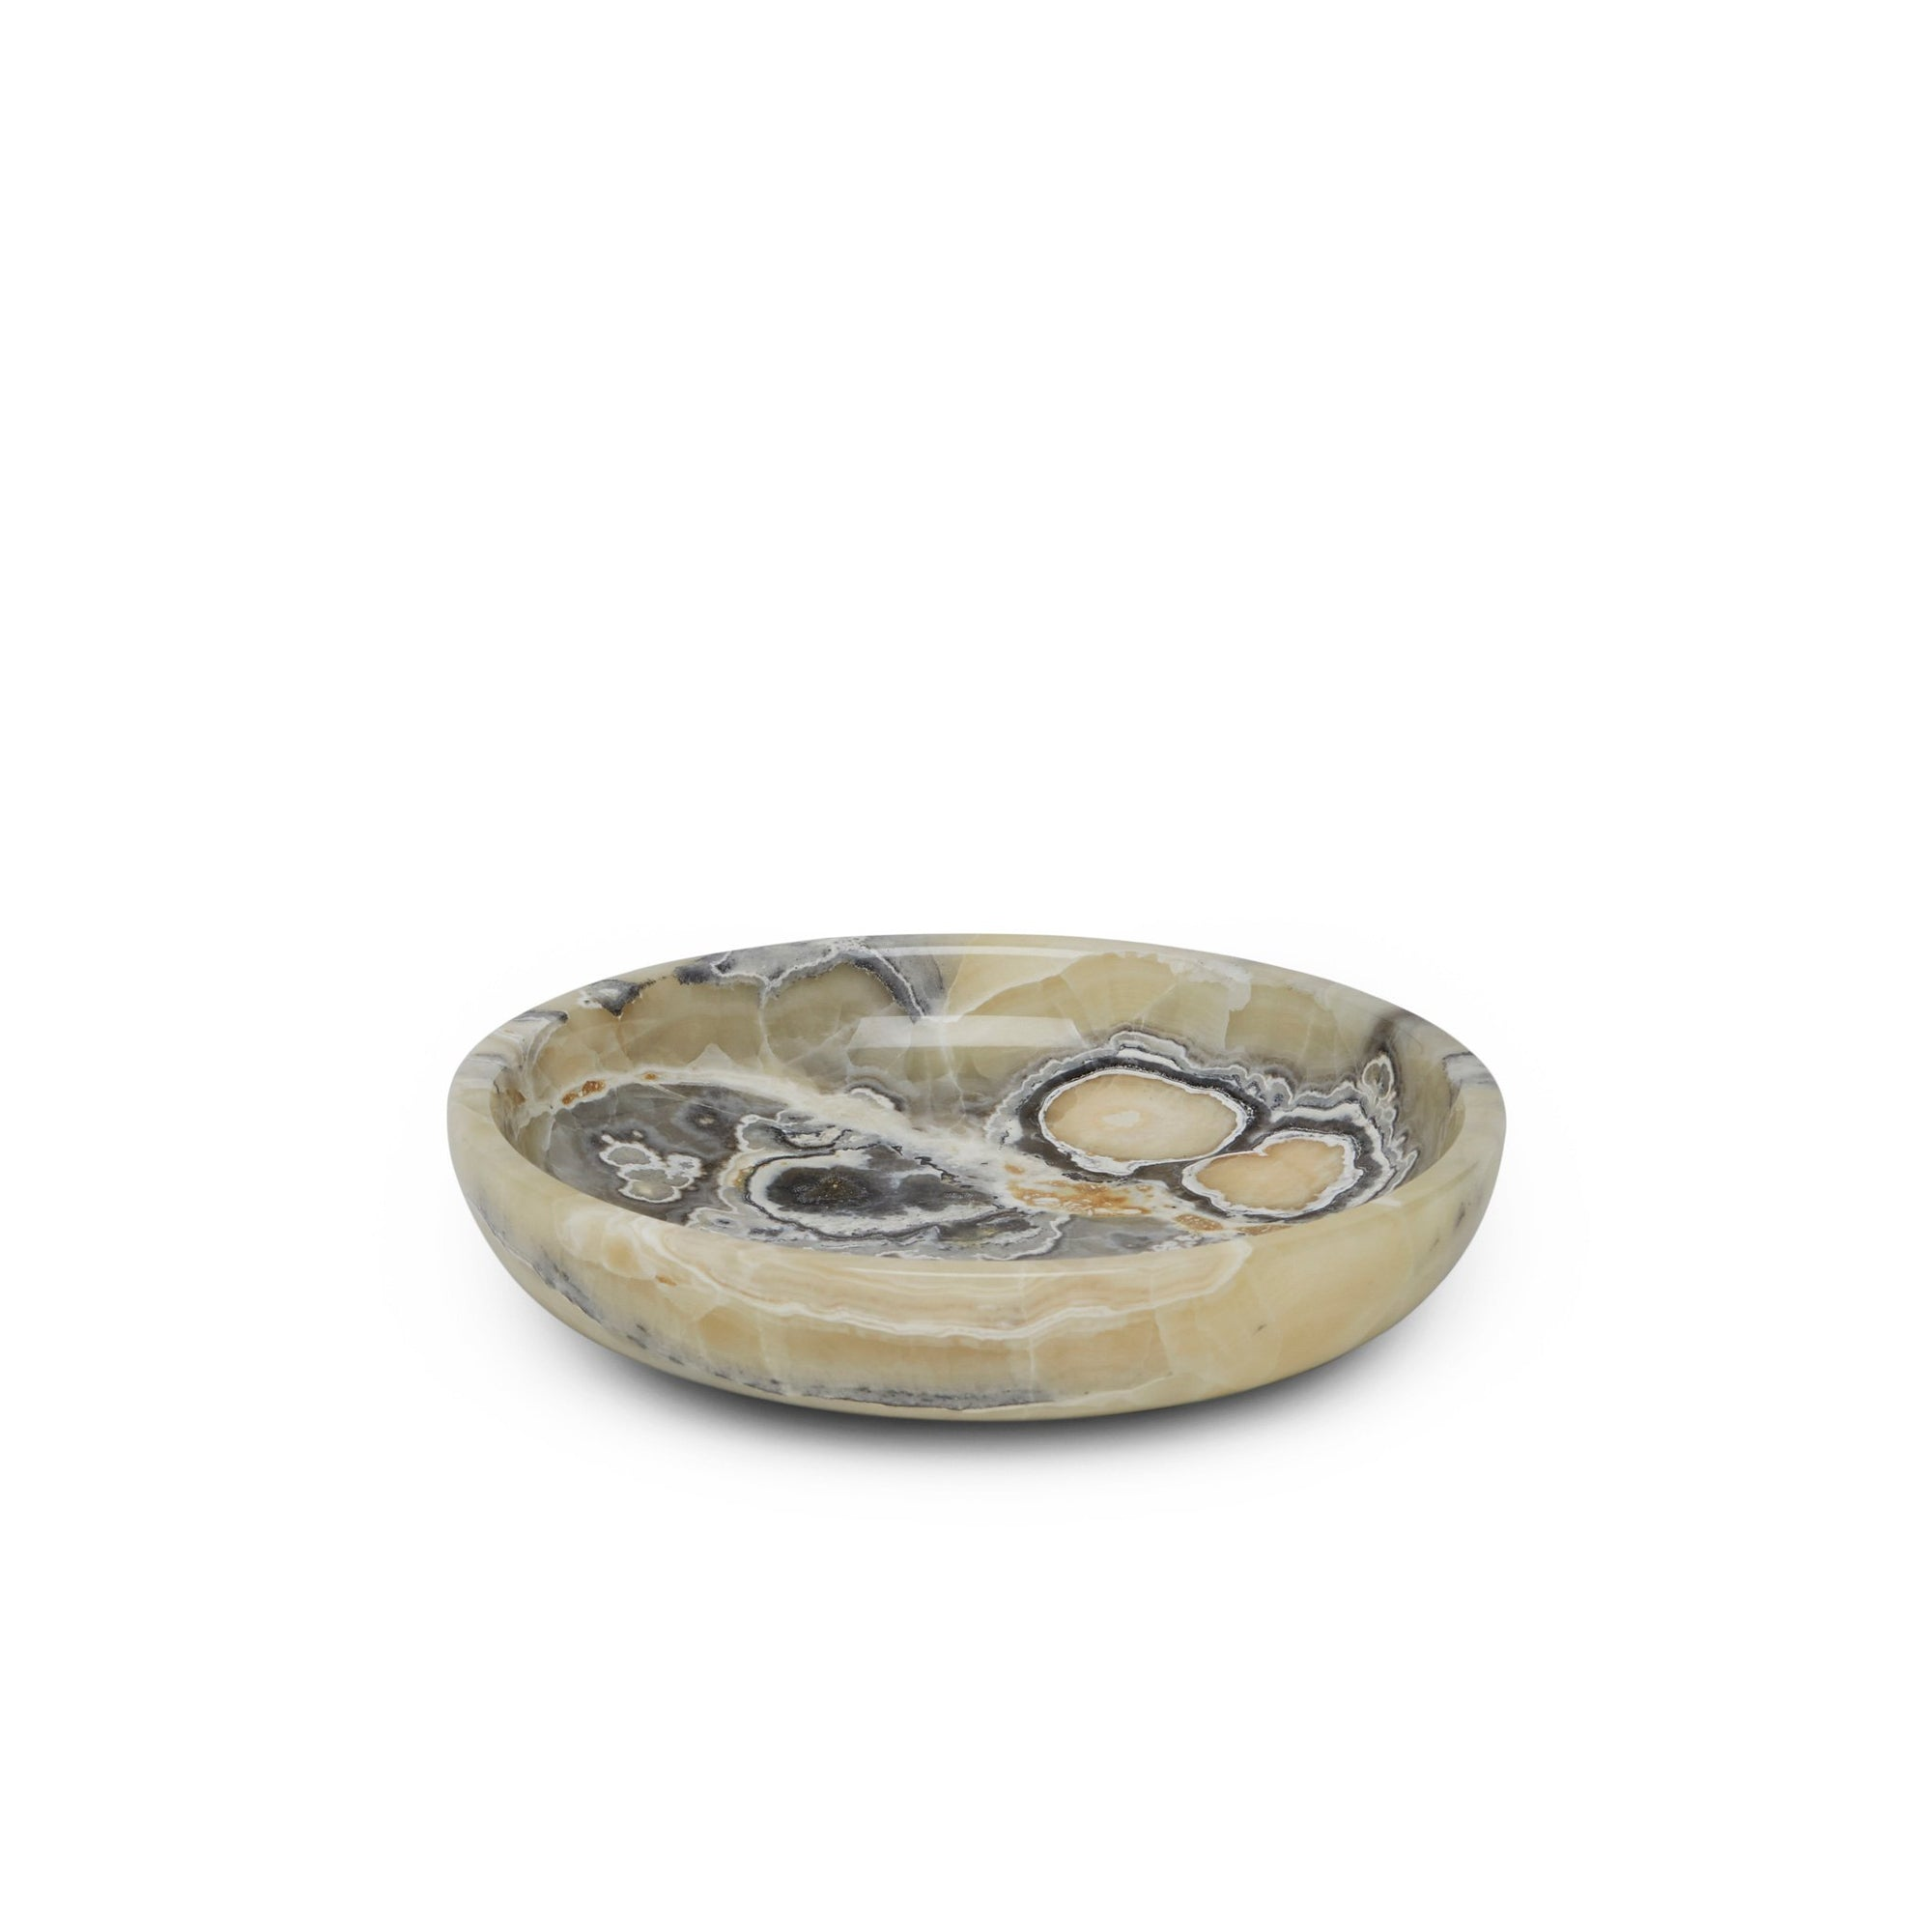 3353-GREYOX Sherle Wagner International Stone Round Soap Dish in Grey Onyx